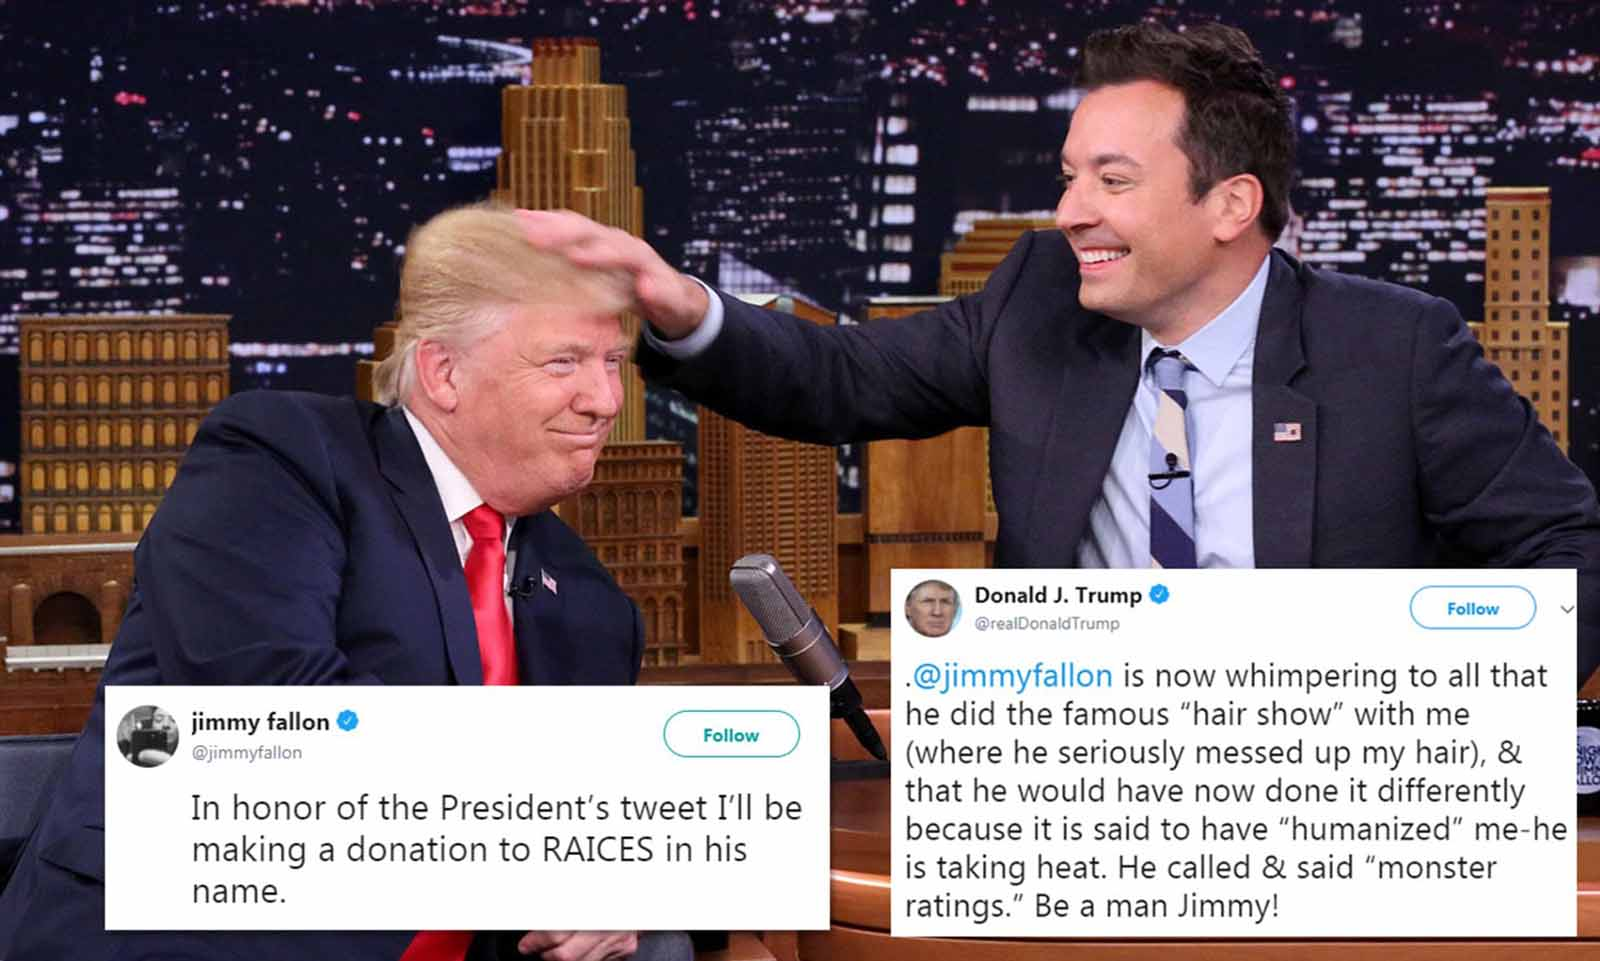 Jimmy Fallon is in hot water for doing blackface on 'SNL', but his net worth should've dropped years ago for all the stupid stuff he's done.